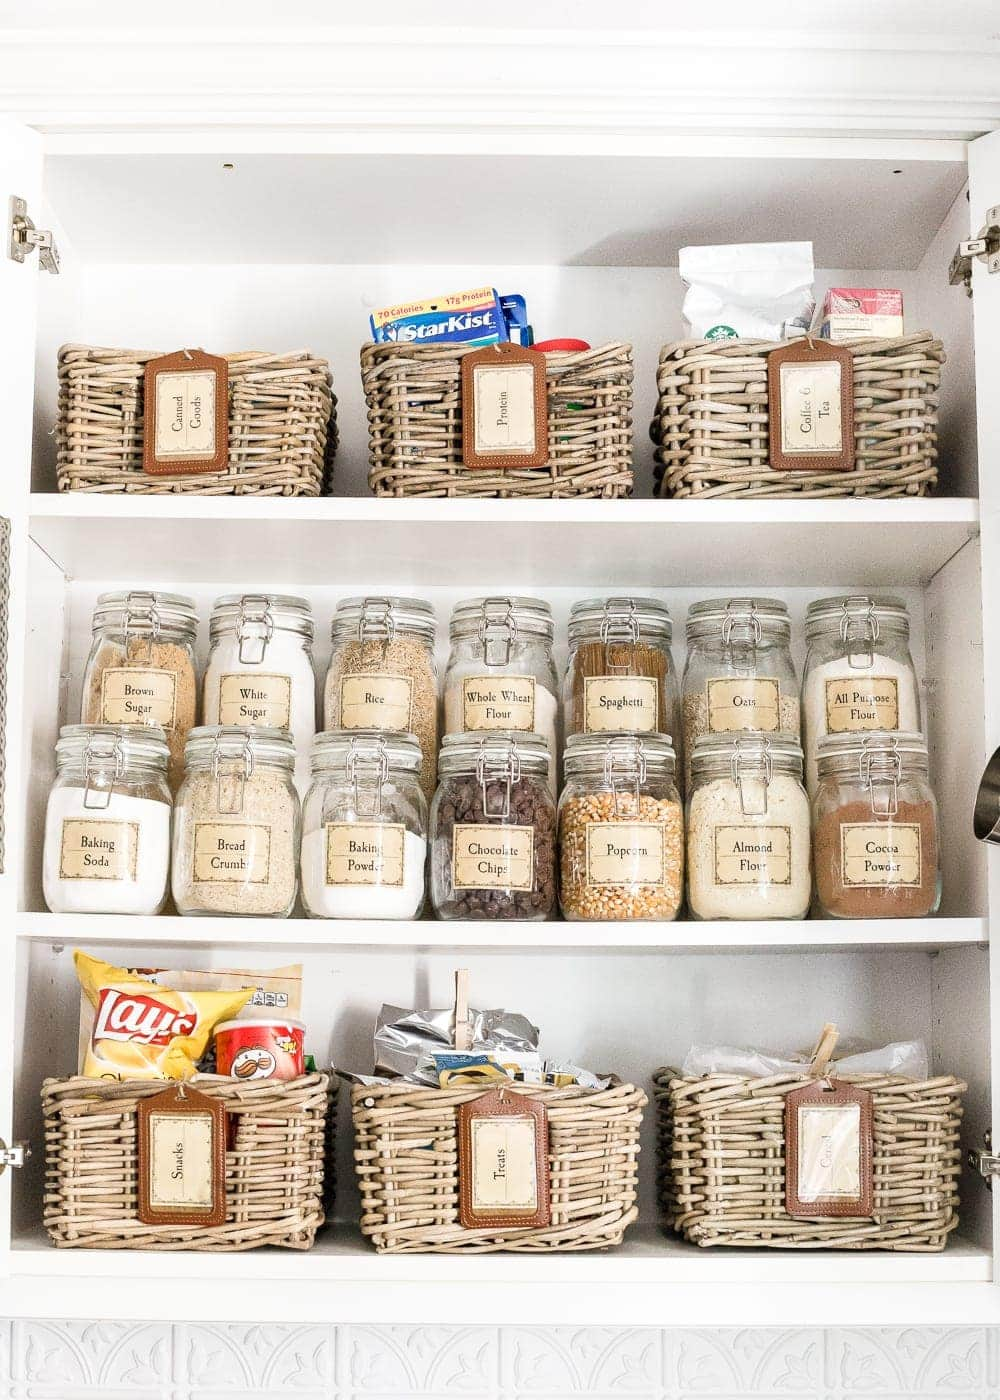 How to Disguise the Ugly Stuff in Your Home | Ditch ingredient packaging and store dry goods in jars with labels instead.